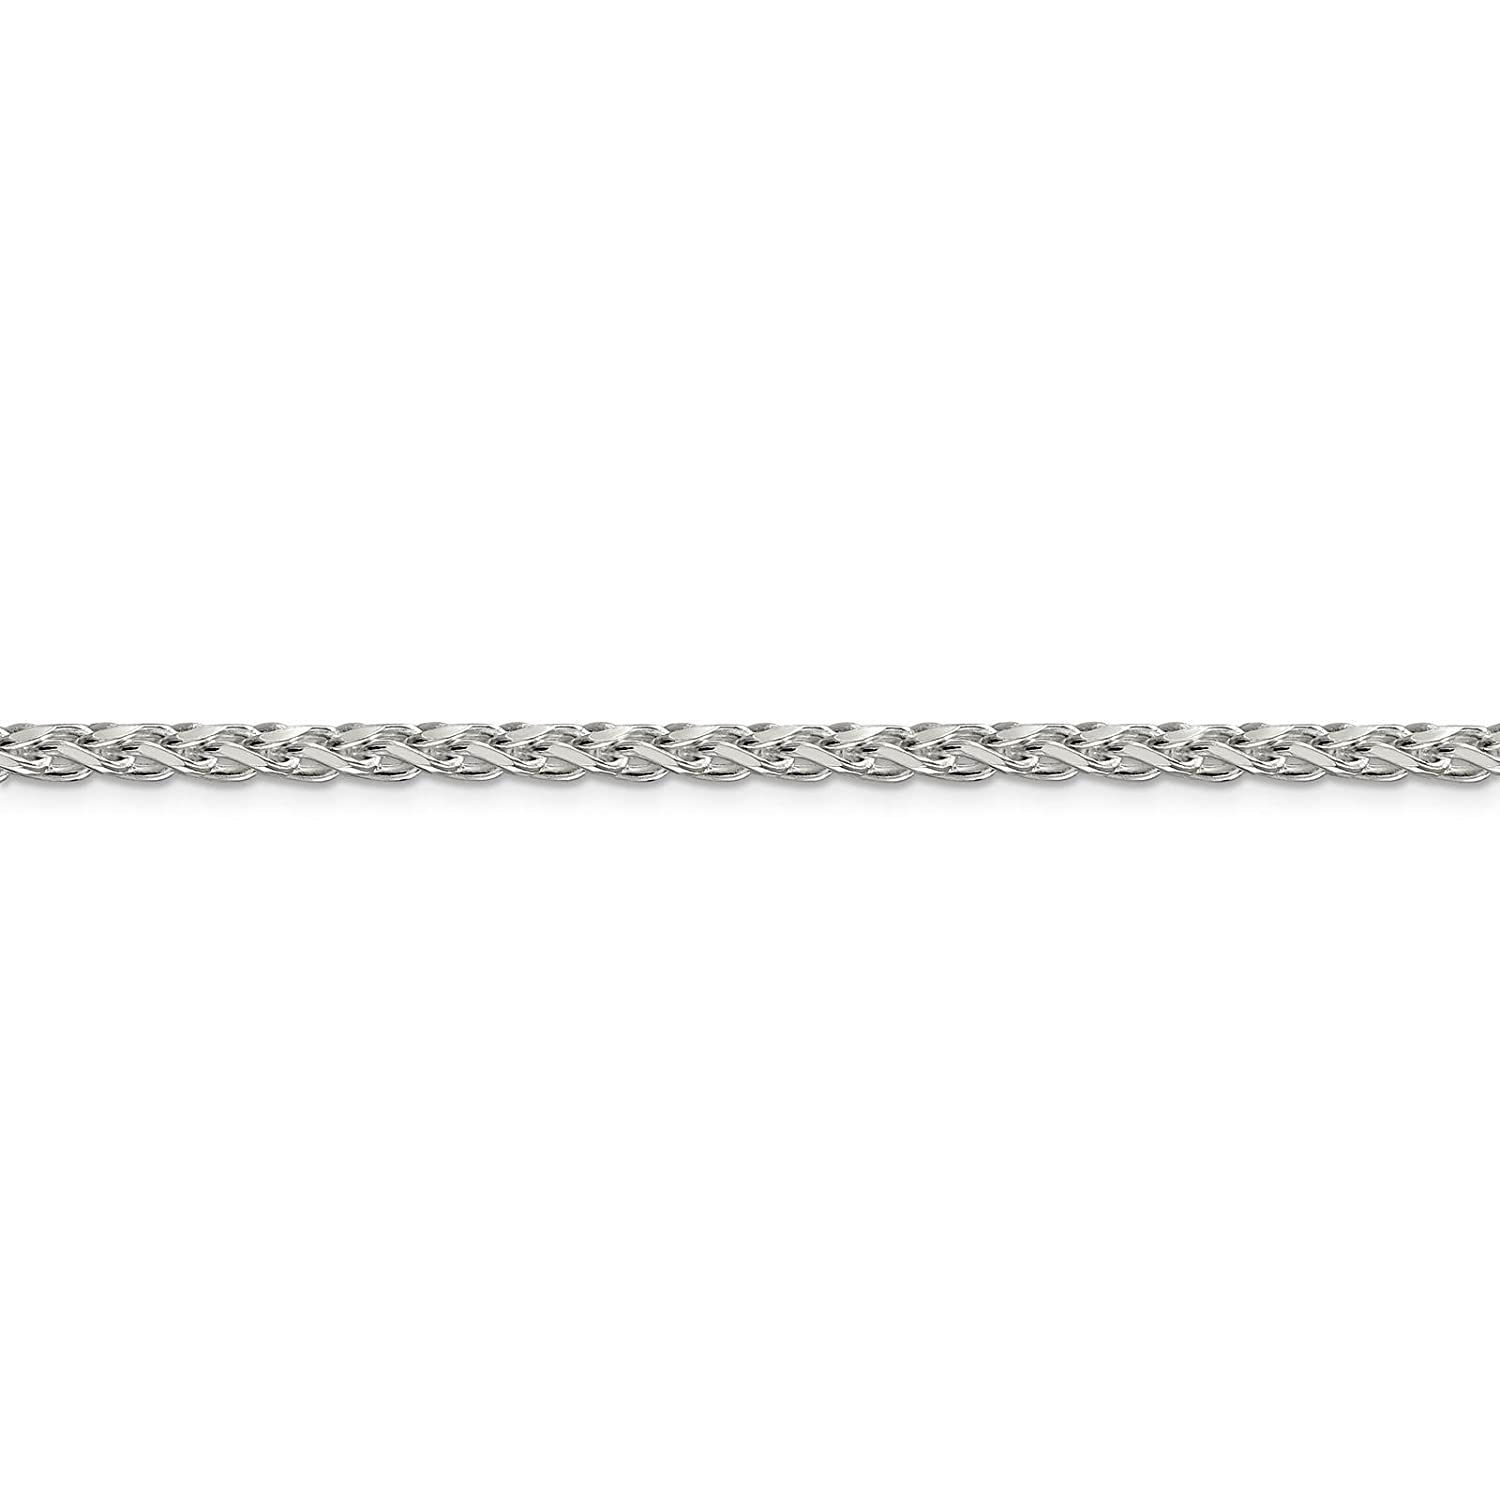 925 Sterling Silver 3.5mm Diamond-cut Round Spiga Chain Necklace 18-24